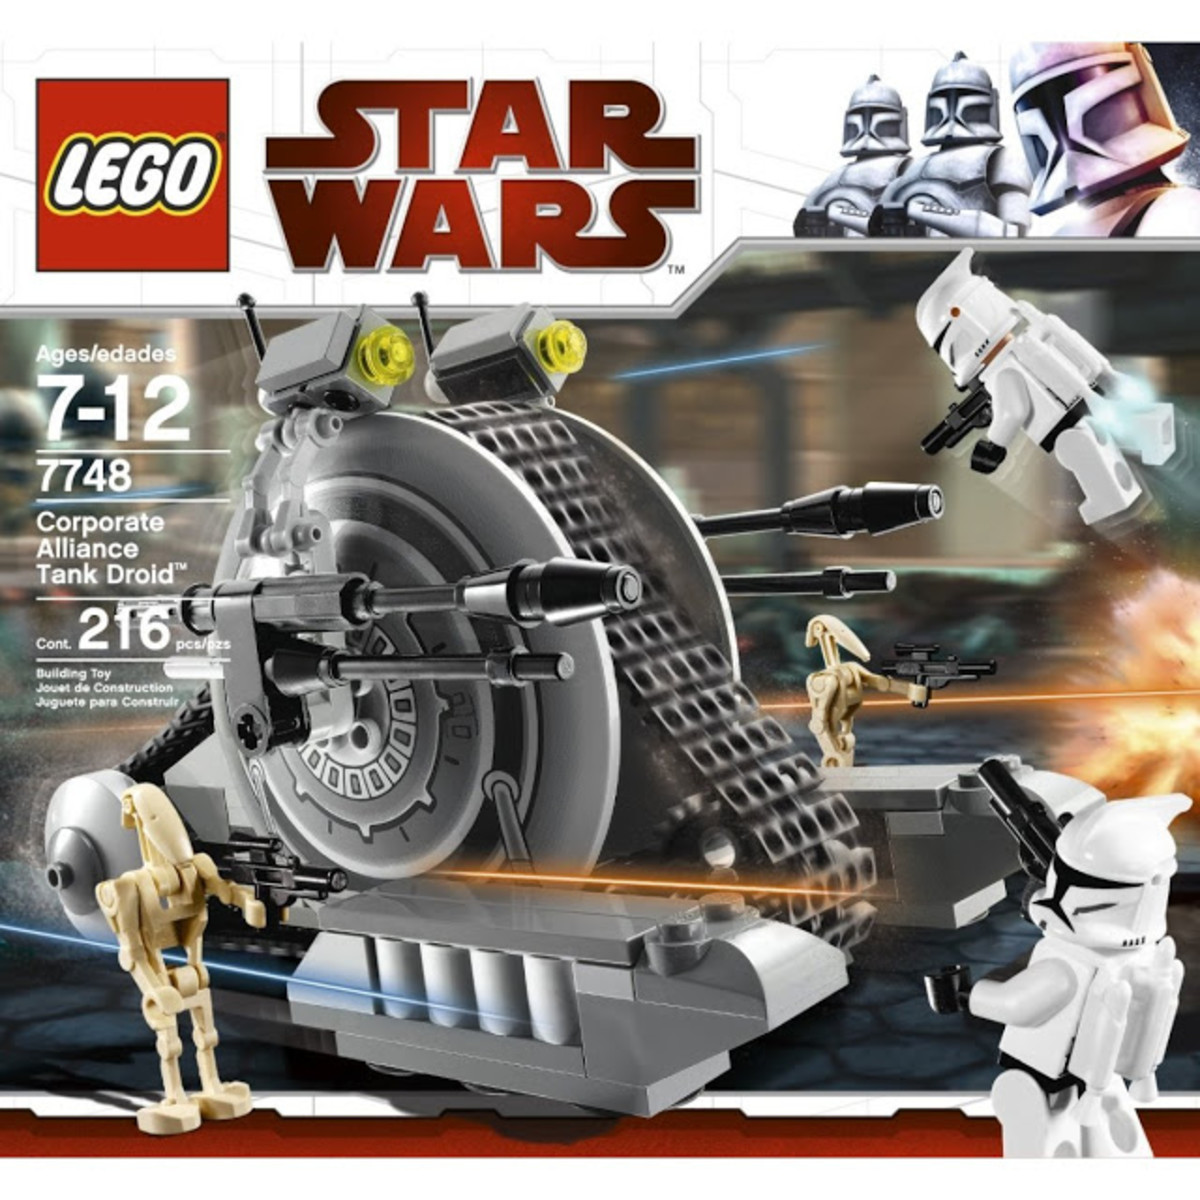 LEGO Star Wars Corporate Alliance Tank Droid 7748 Box